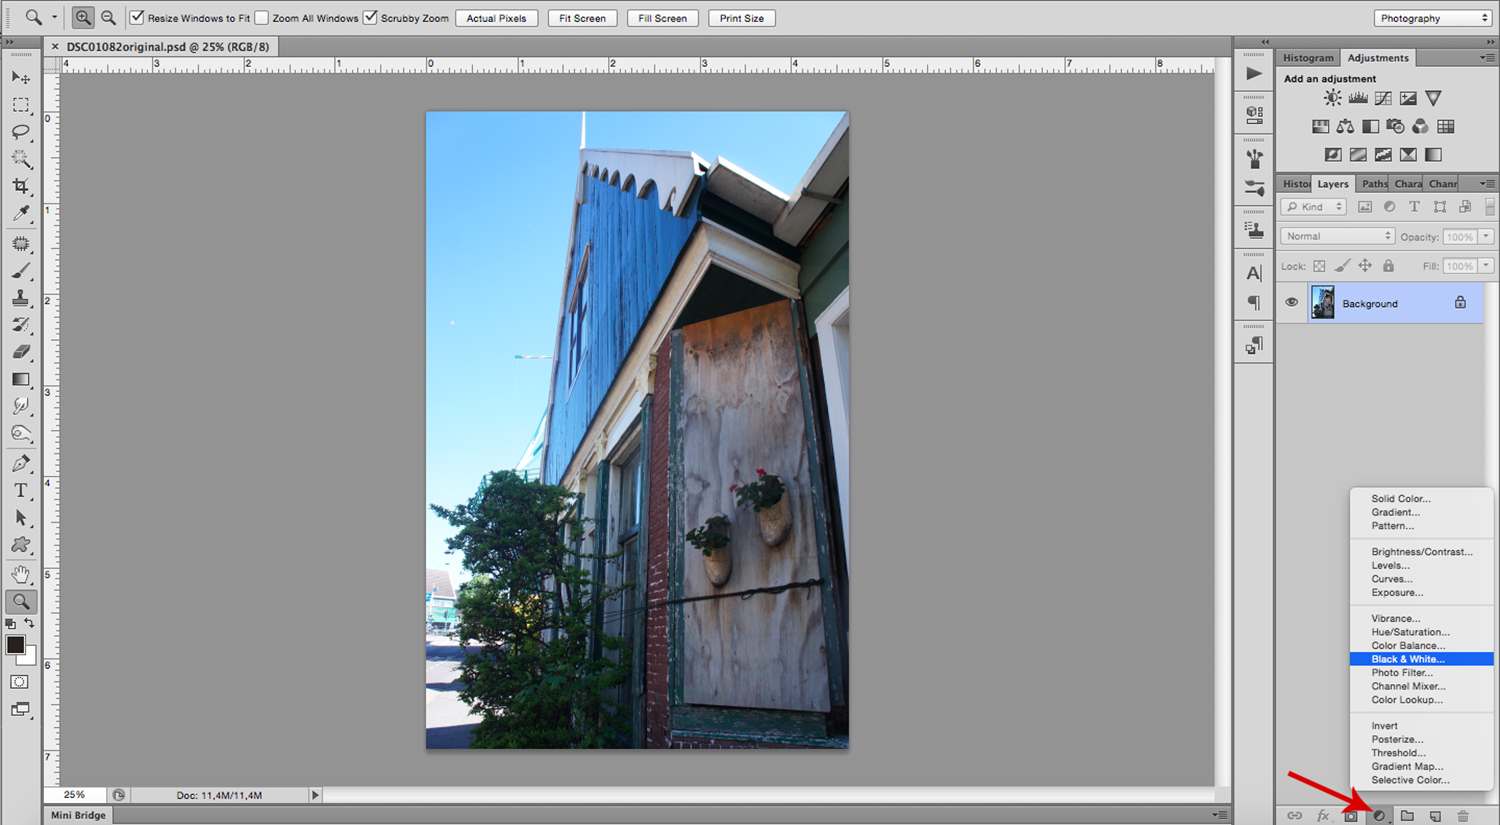 2 -How to Create a Lithography Effect Using Photoshop